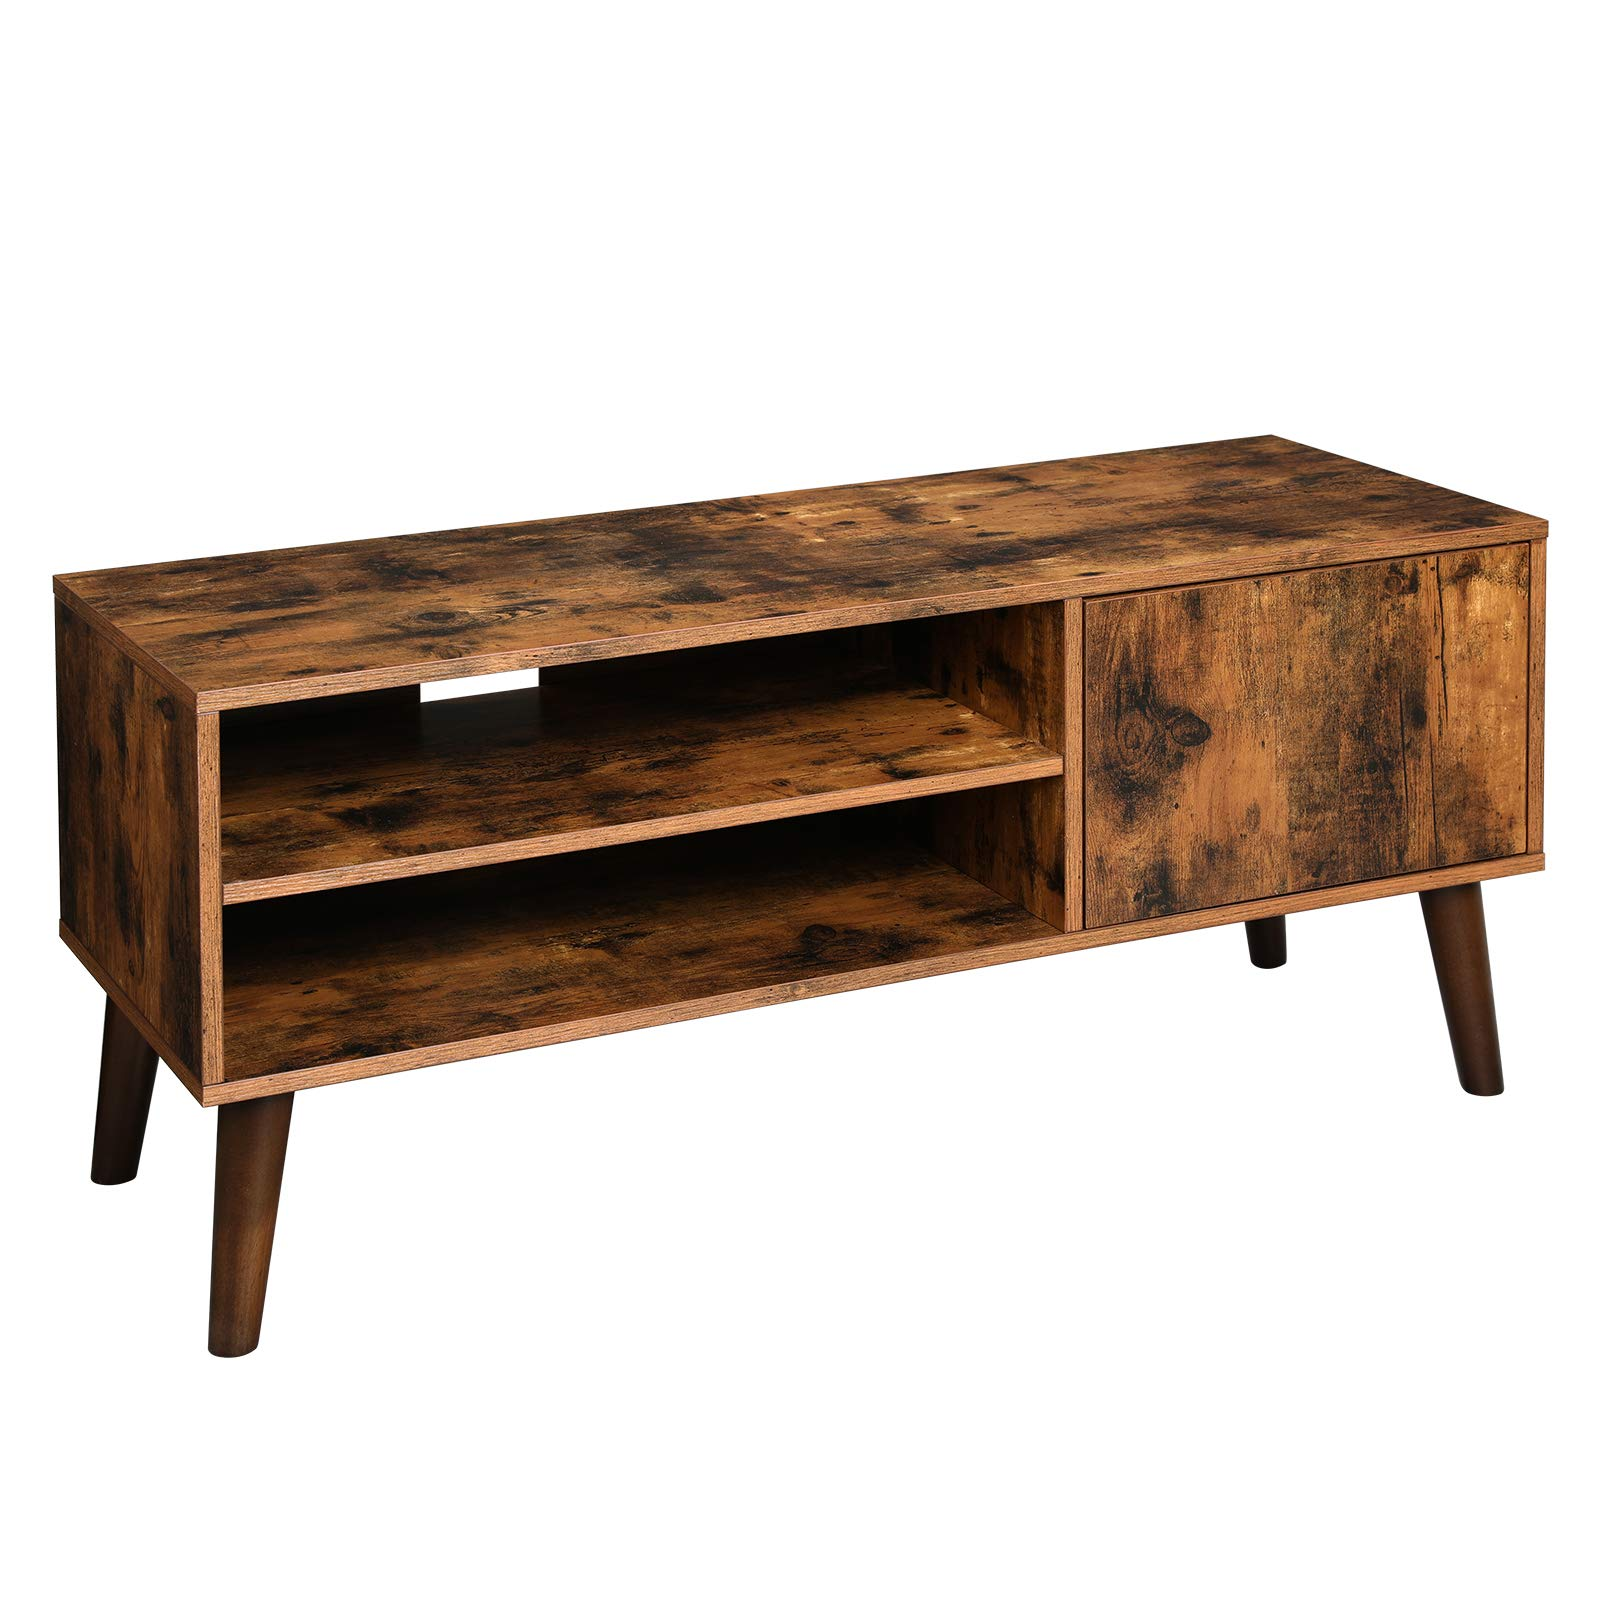 VASAGLE Retro TV Stand, TV Console, Mid-Century Modern Entertainment Center for Flat Screen TV Cable Box Gaming Consoles, in Living Room Entertainment Room Office ULTV09BX by VASAGLE